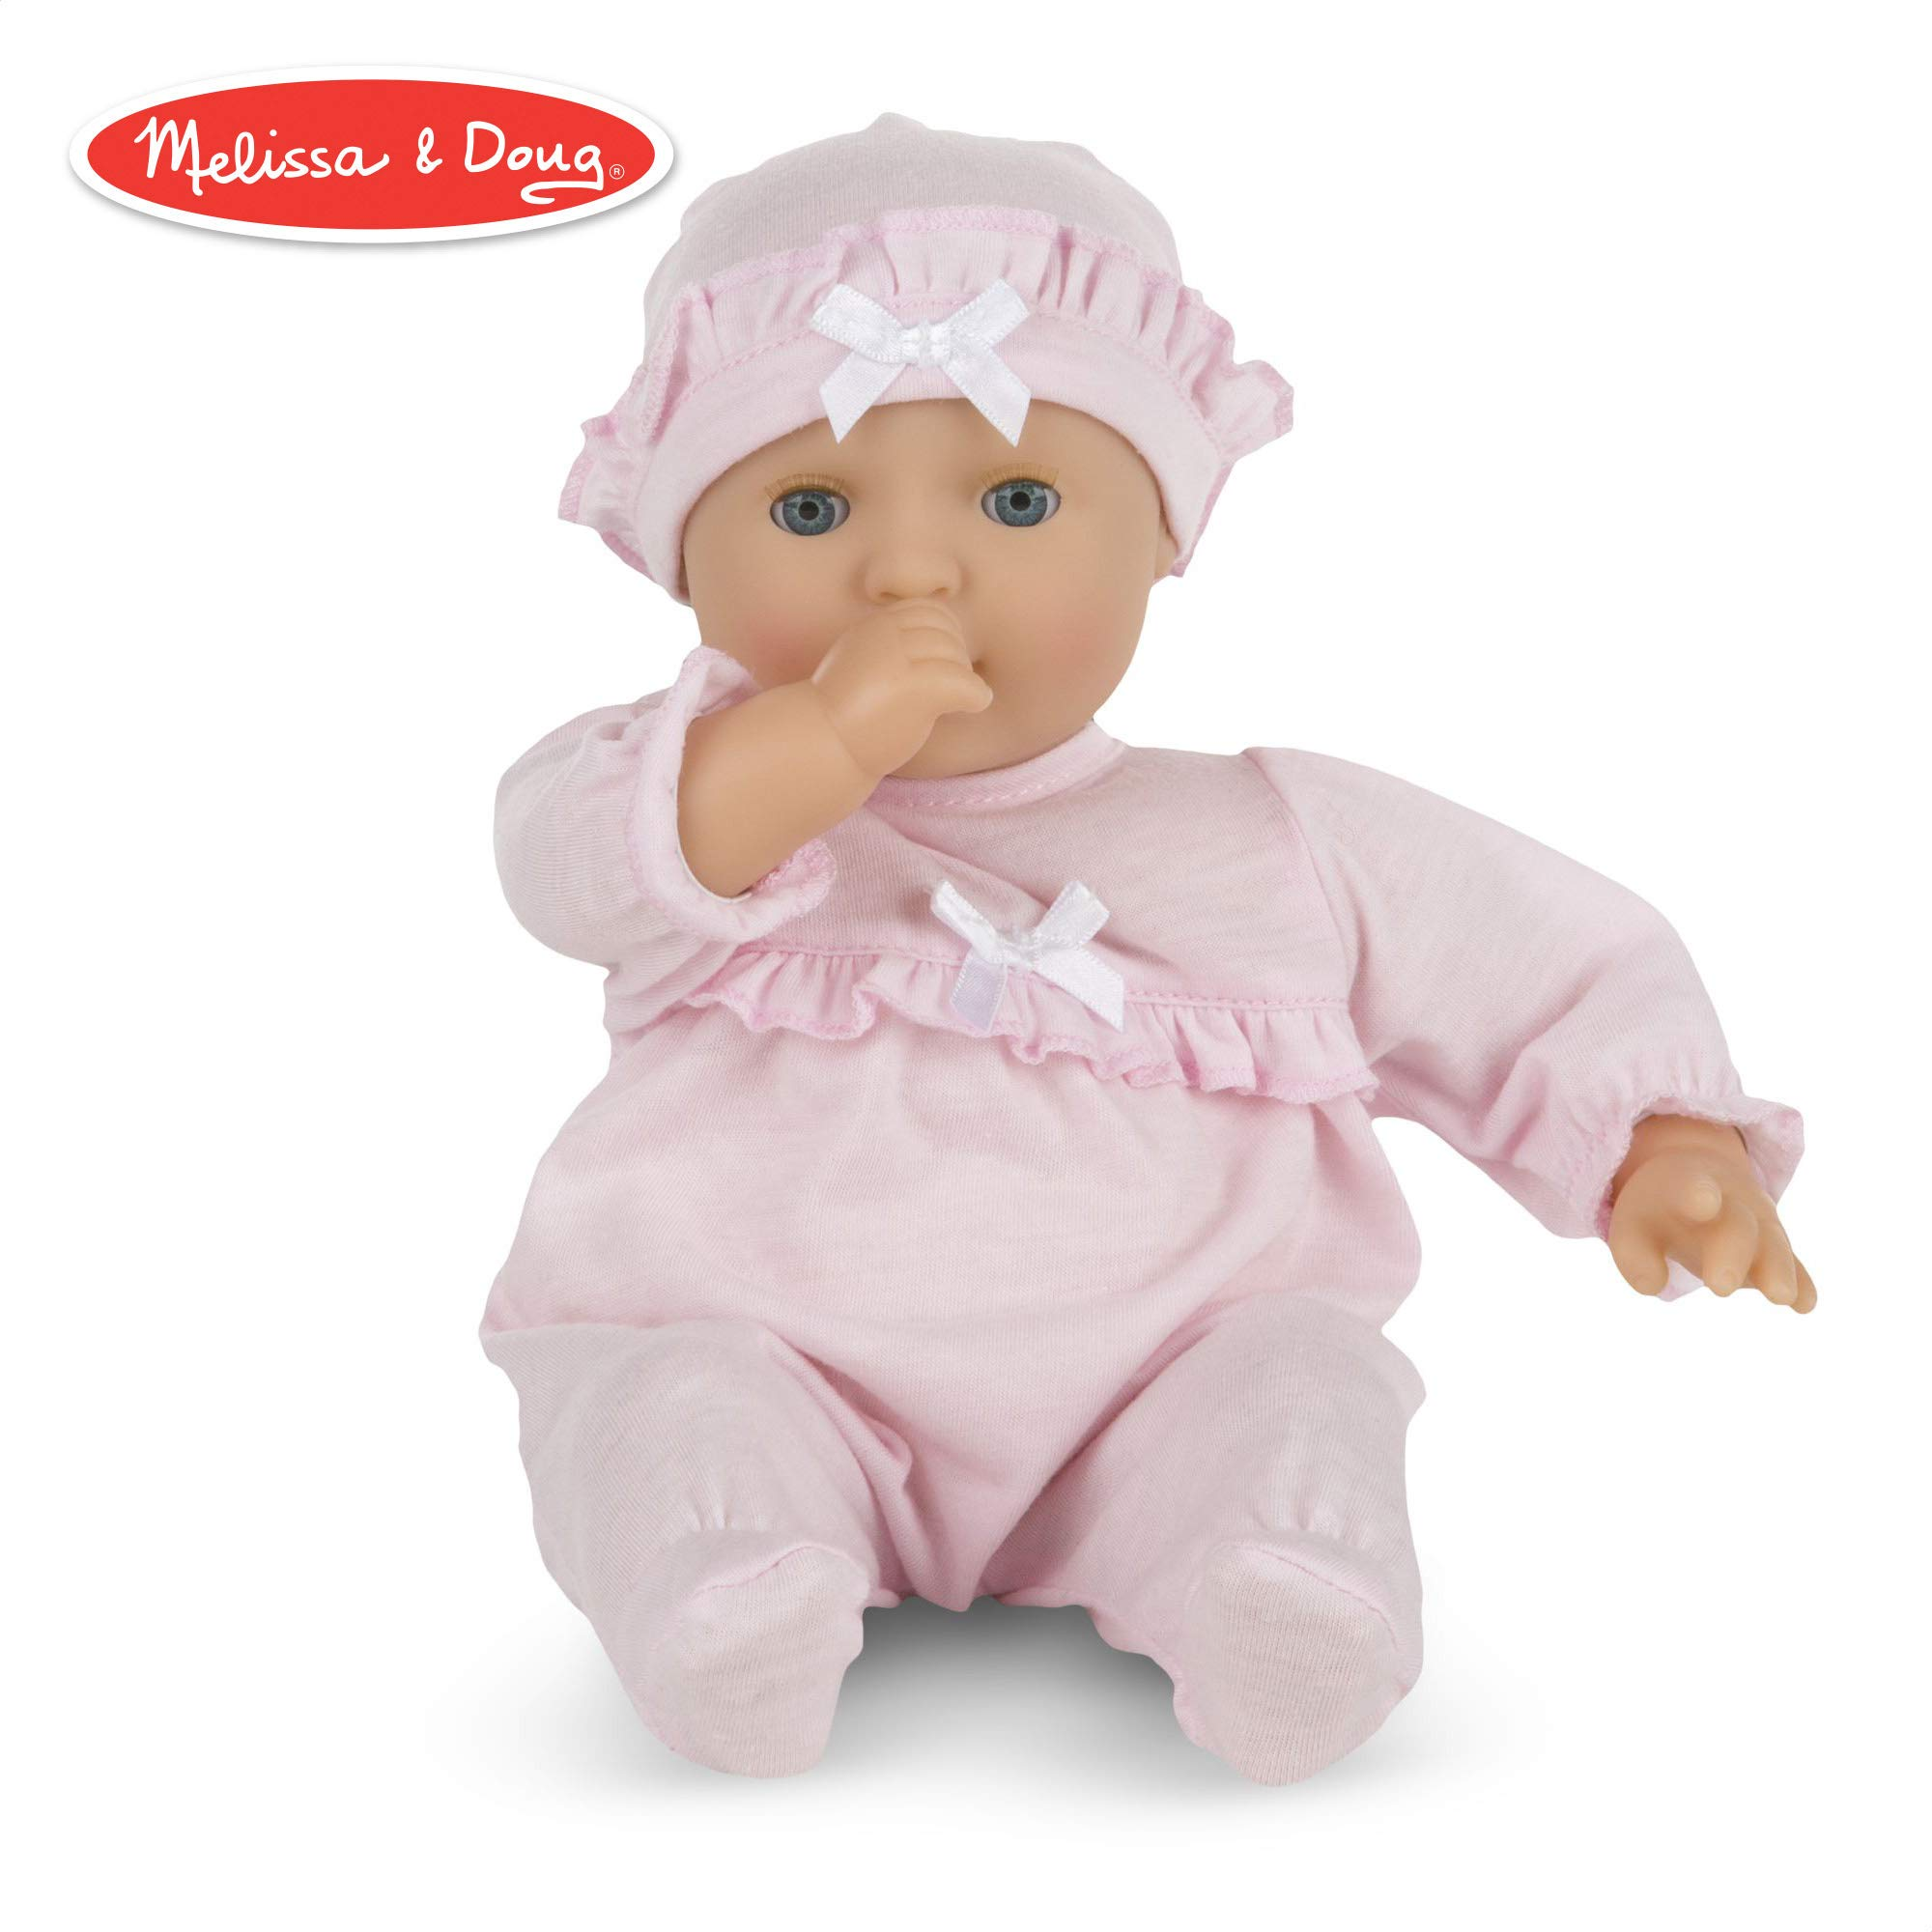 Melissa & Doug Mine to Love Jenna 12-Inch Soft Body Baby Doll, Romper and Hat Included, Wipe-Clean Arms & Legs, 12.5'' H x 7.2'' W x 4.7'' L by Melissa & Doug